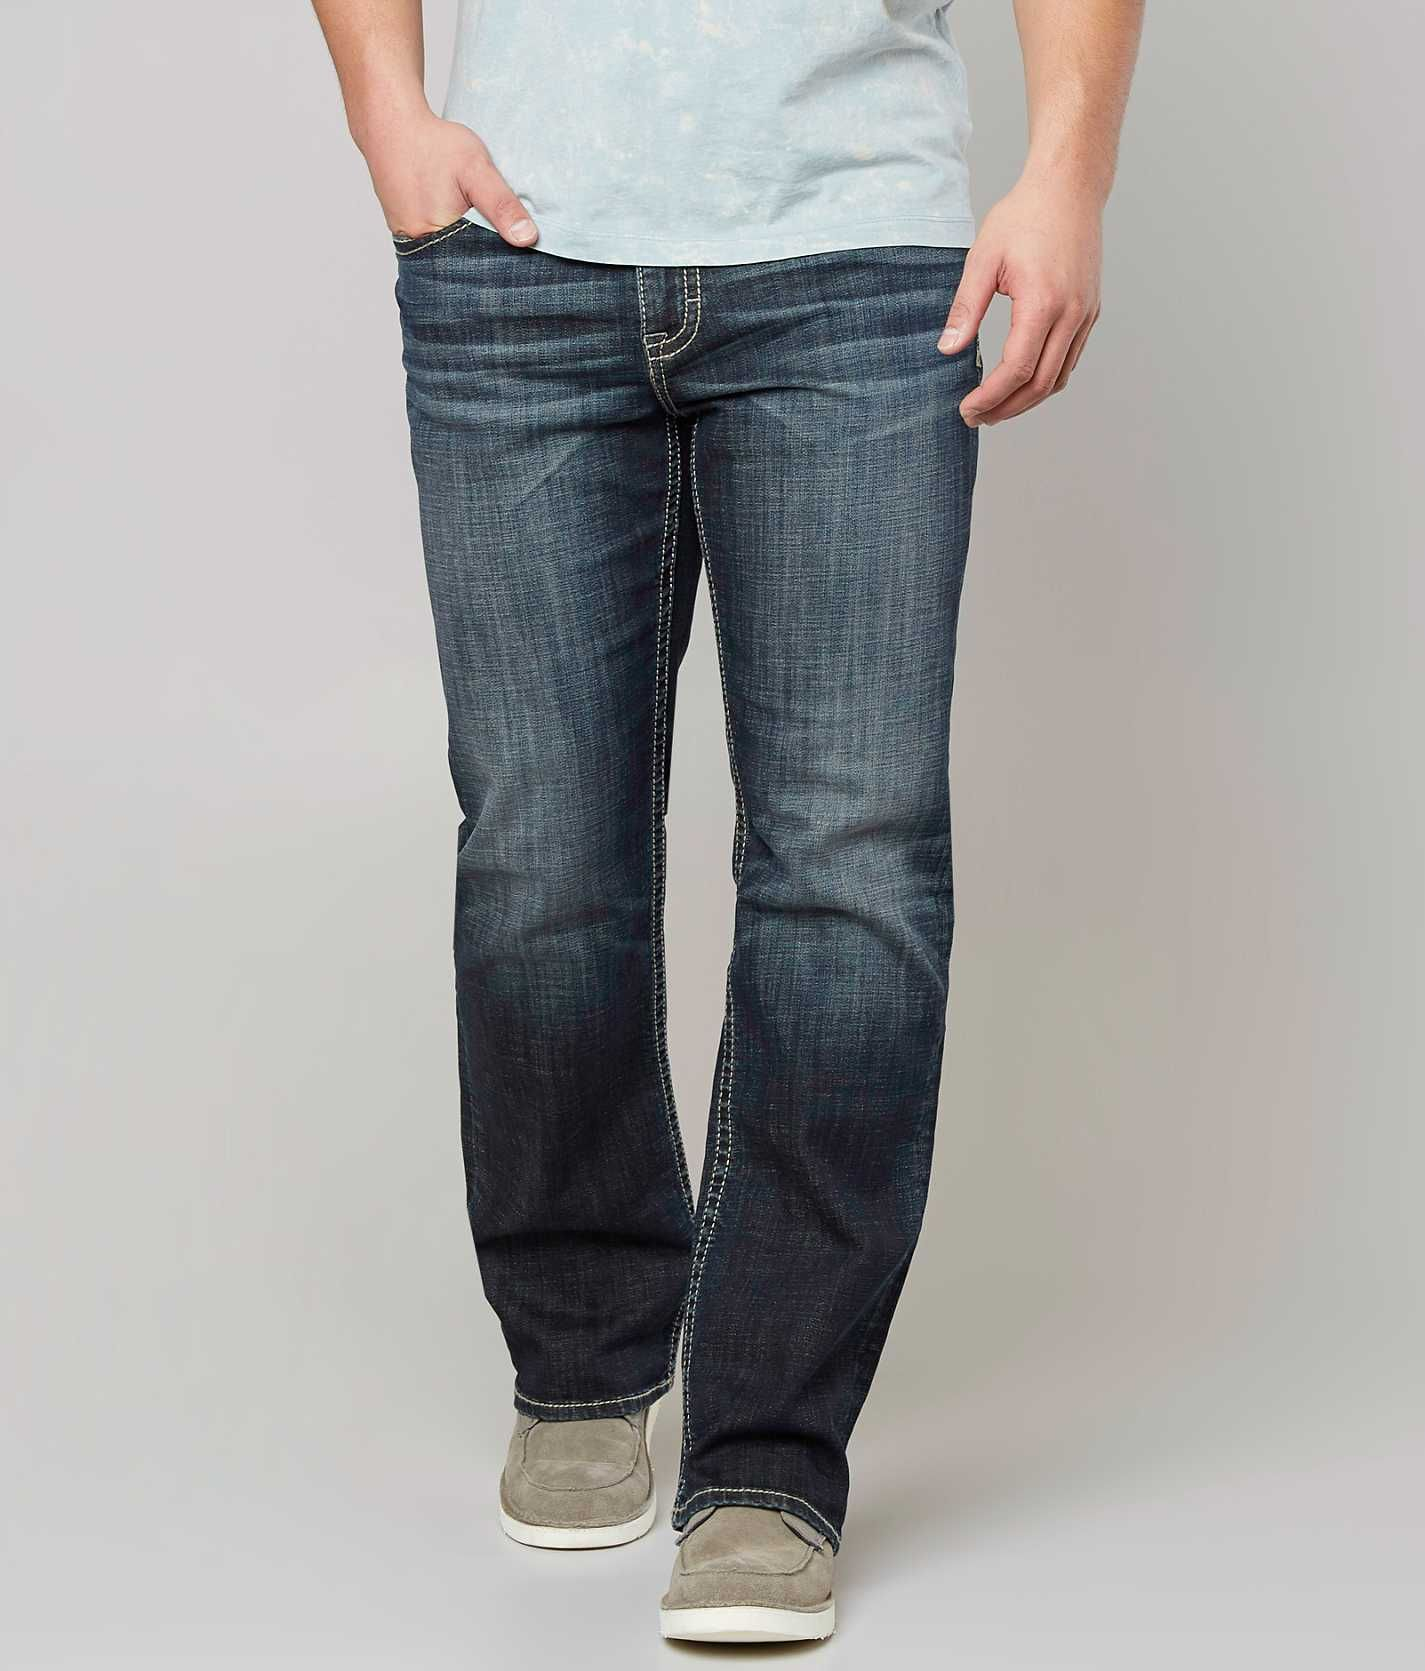 17a1a90e8ff BKE Tyler Boot Stretch Jean - Men's Jeans in STROW 2 | Buckle ...